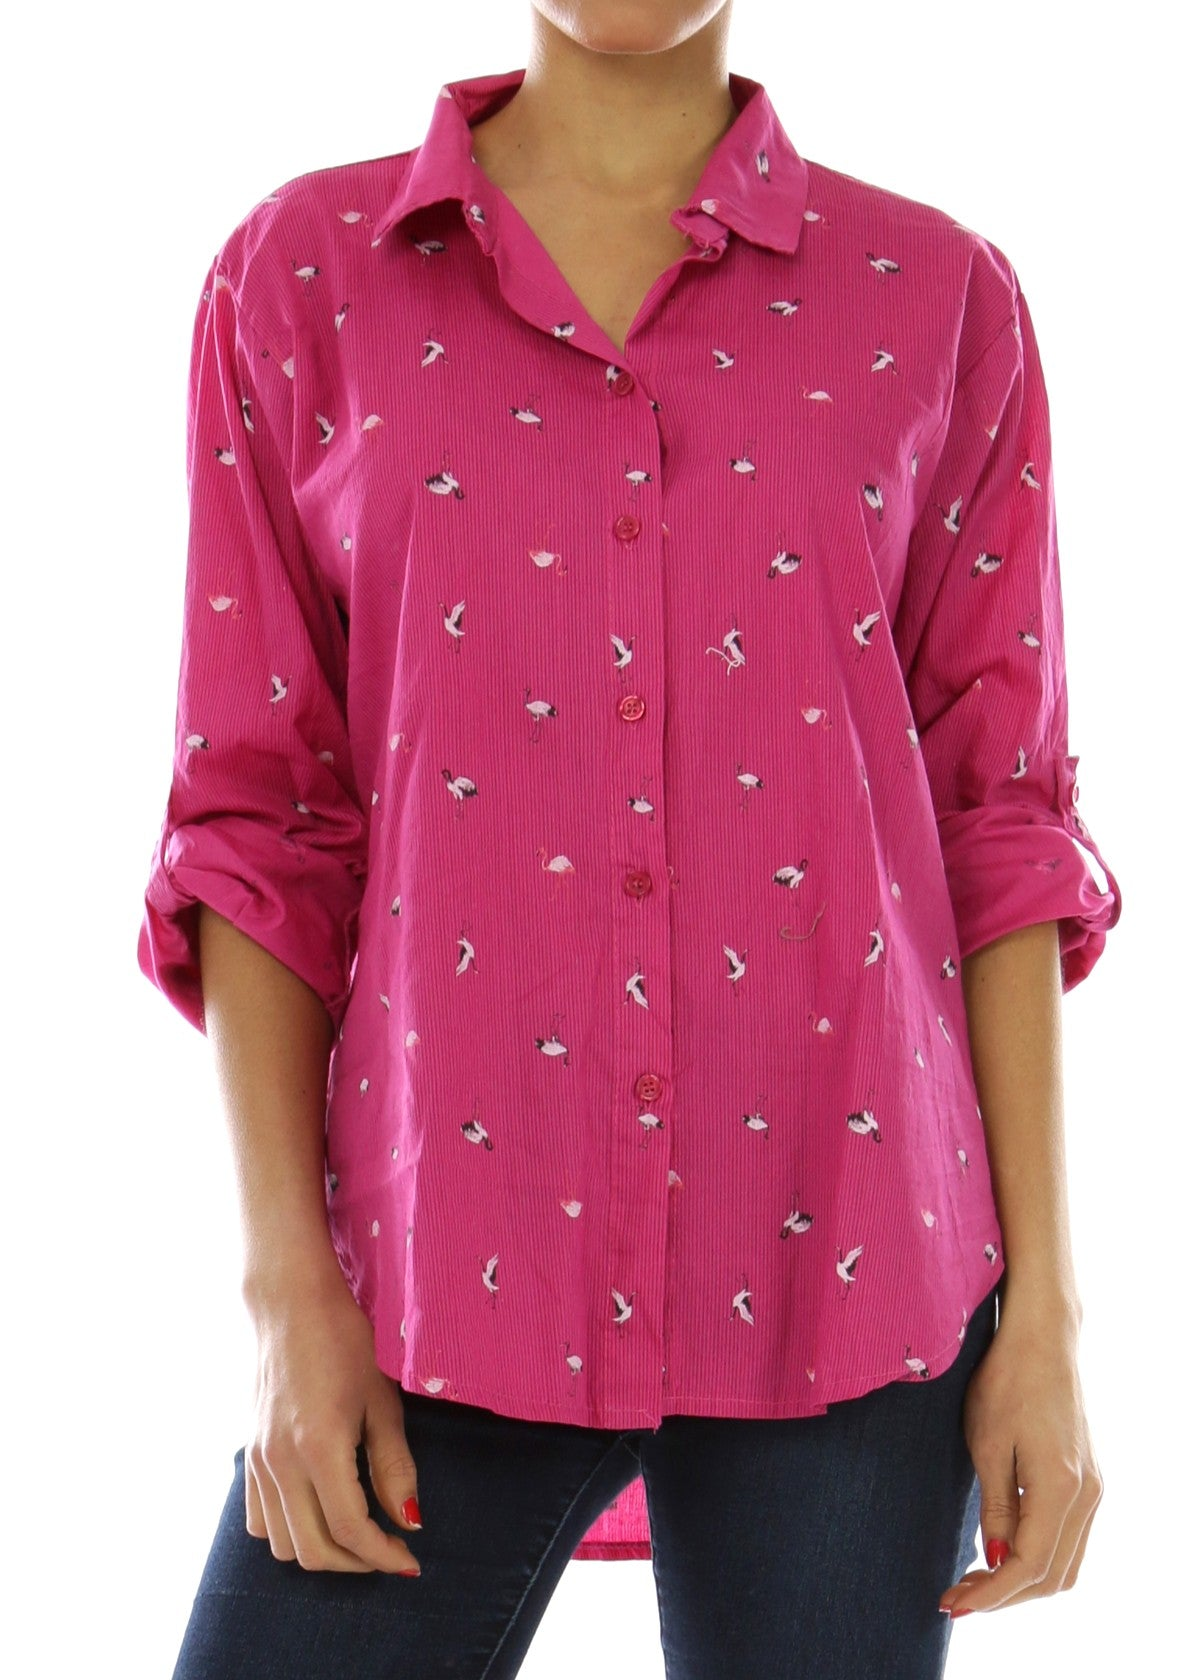 CODI - Flamingo Shirt - Fuscia